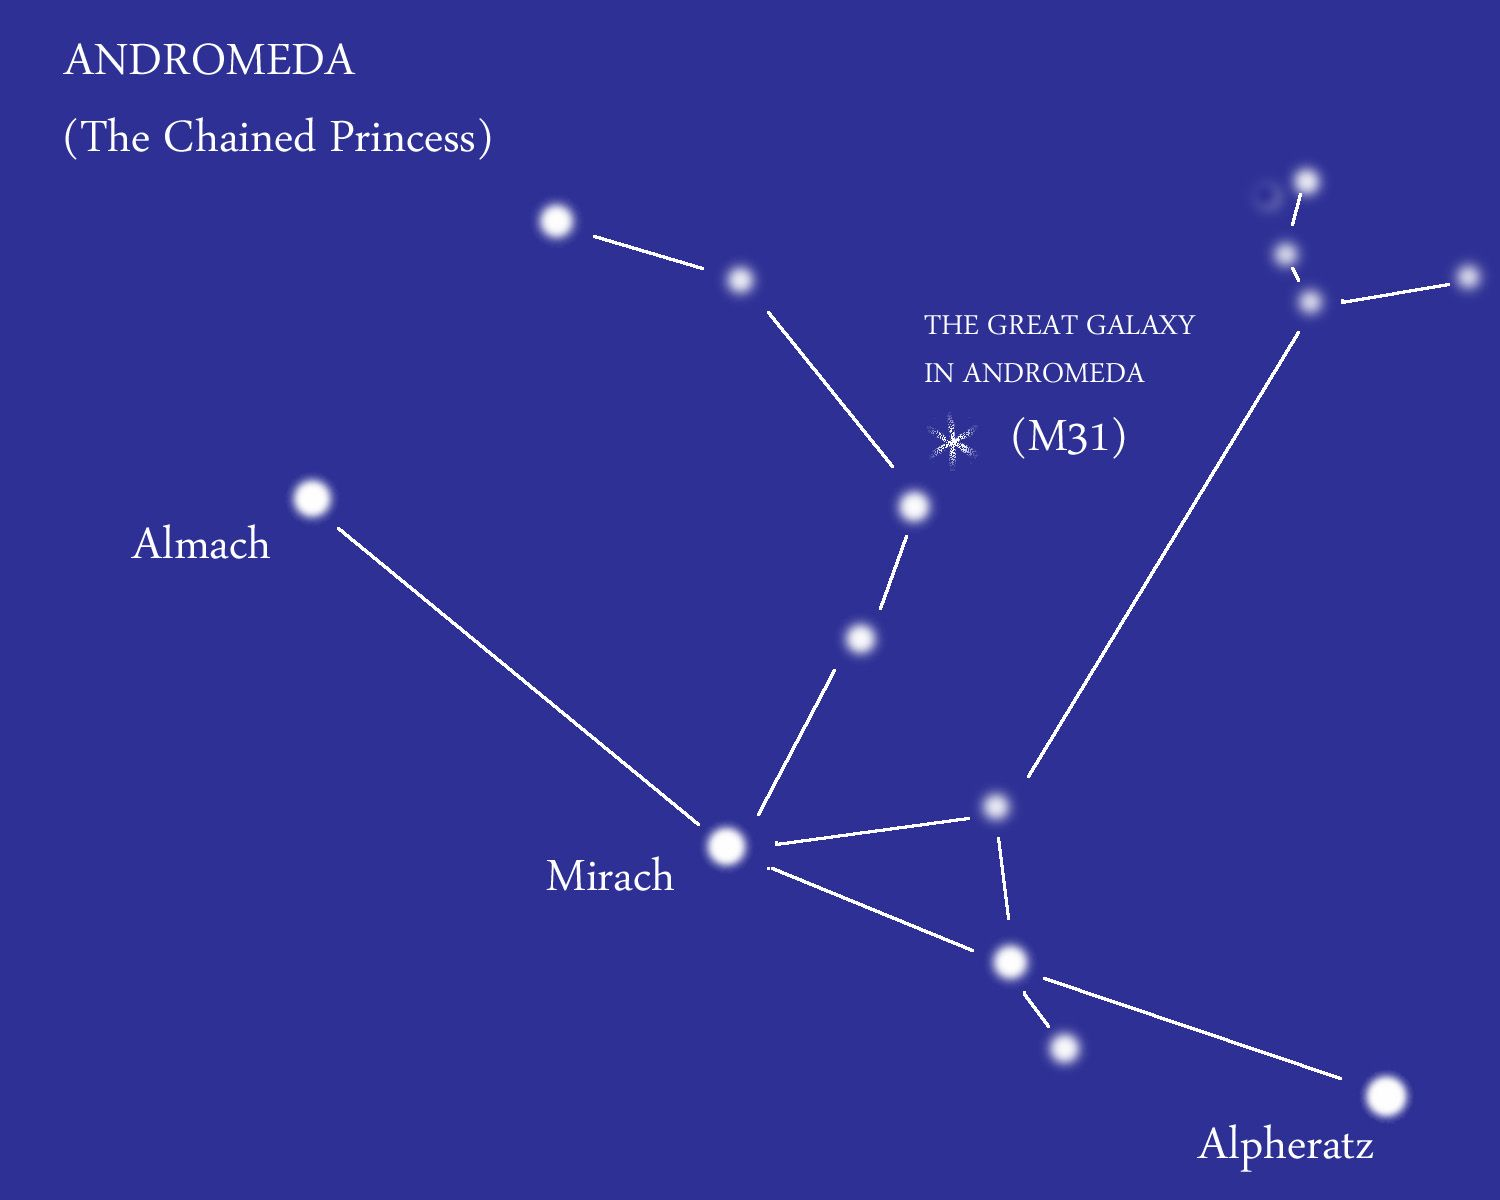 hight resolution of andromeda the chained princess the constellation is best known for the andromeda galaxy m31 which is the closest galaxy to our own milky way